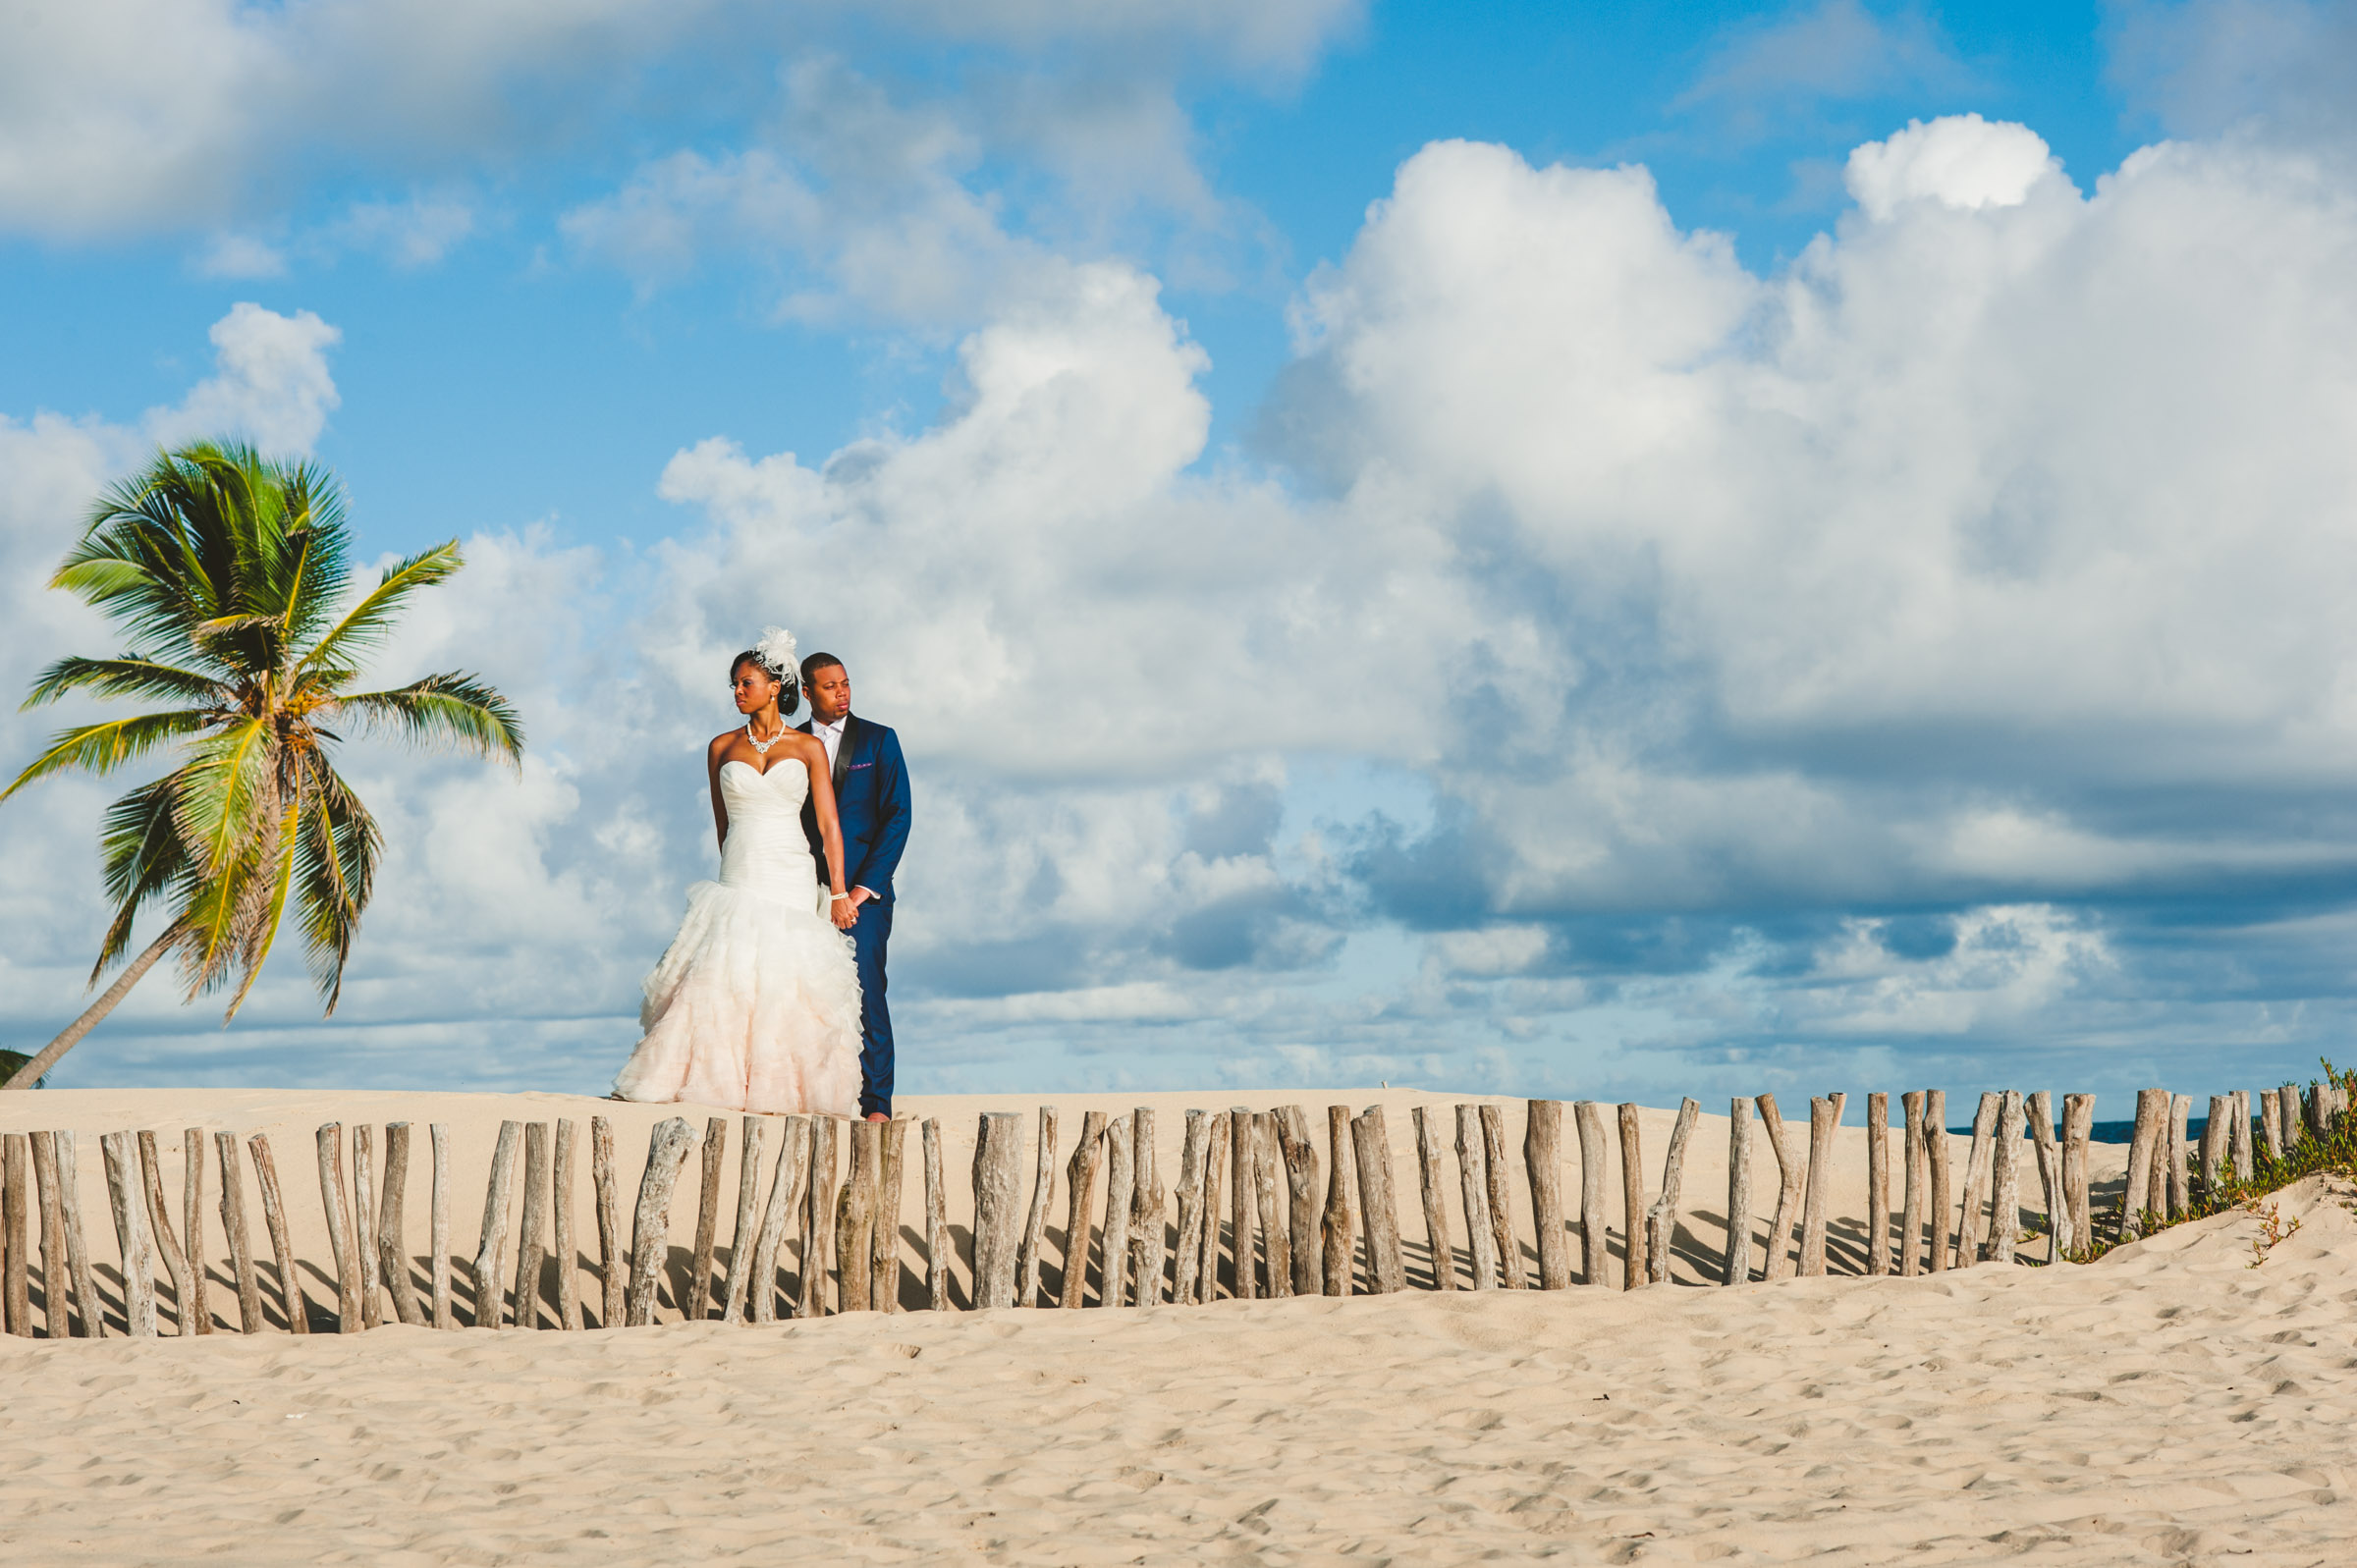 Hardrock punta cana wedding portraits